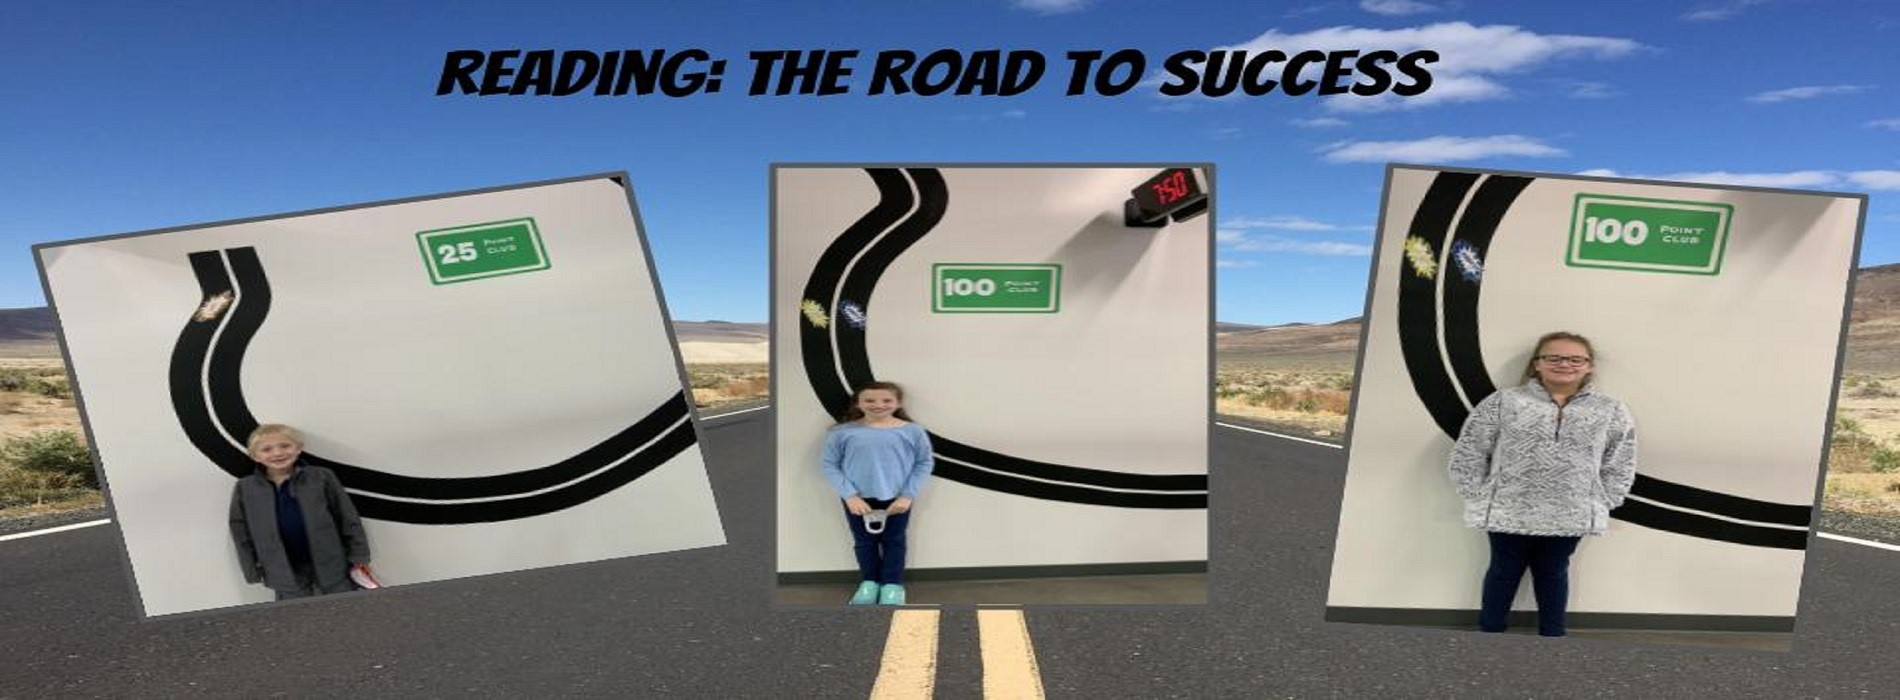 Reading: The Road to Success